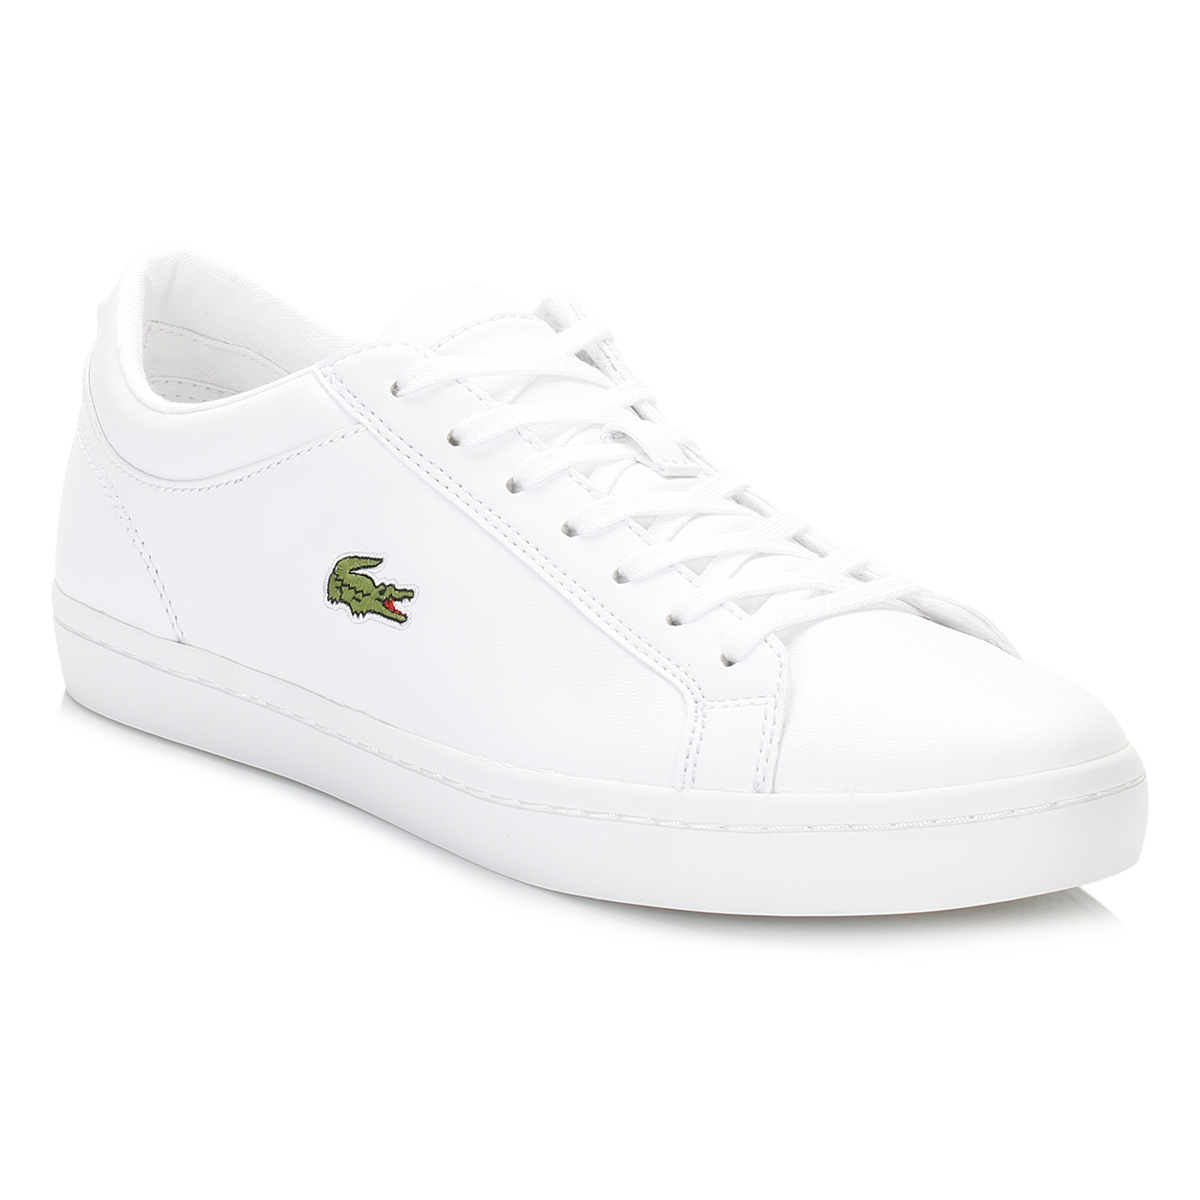 b5fa449b81 Details about Lacoste Womens White Trainers, Straightset BL1 SPW, Lace Up,  Casual Sneaker Shoe